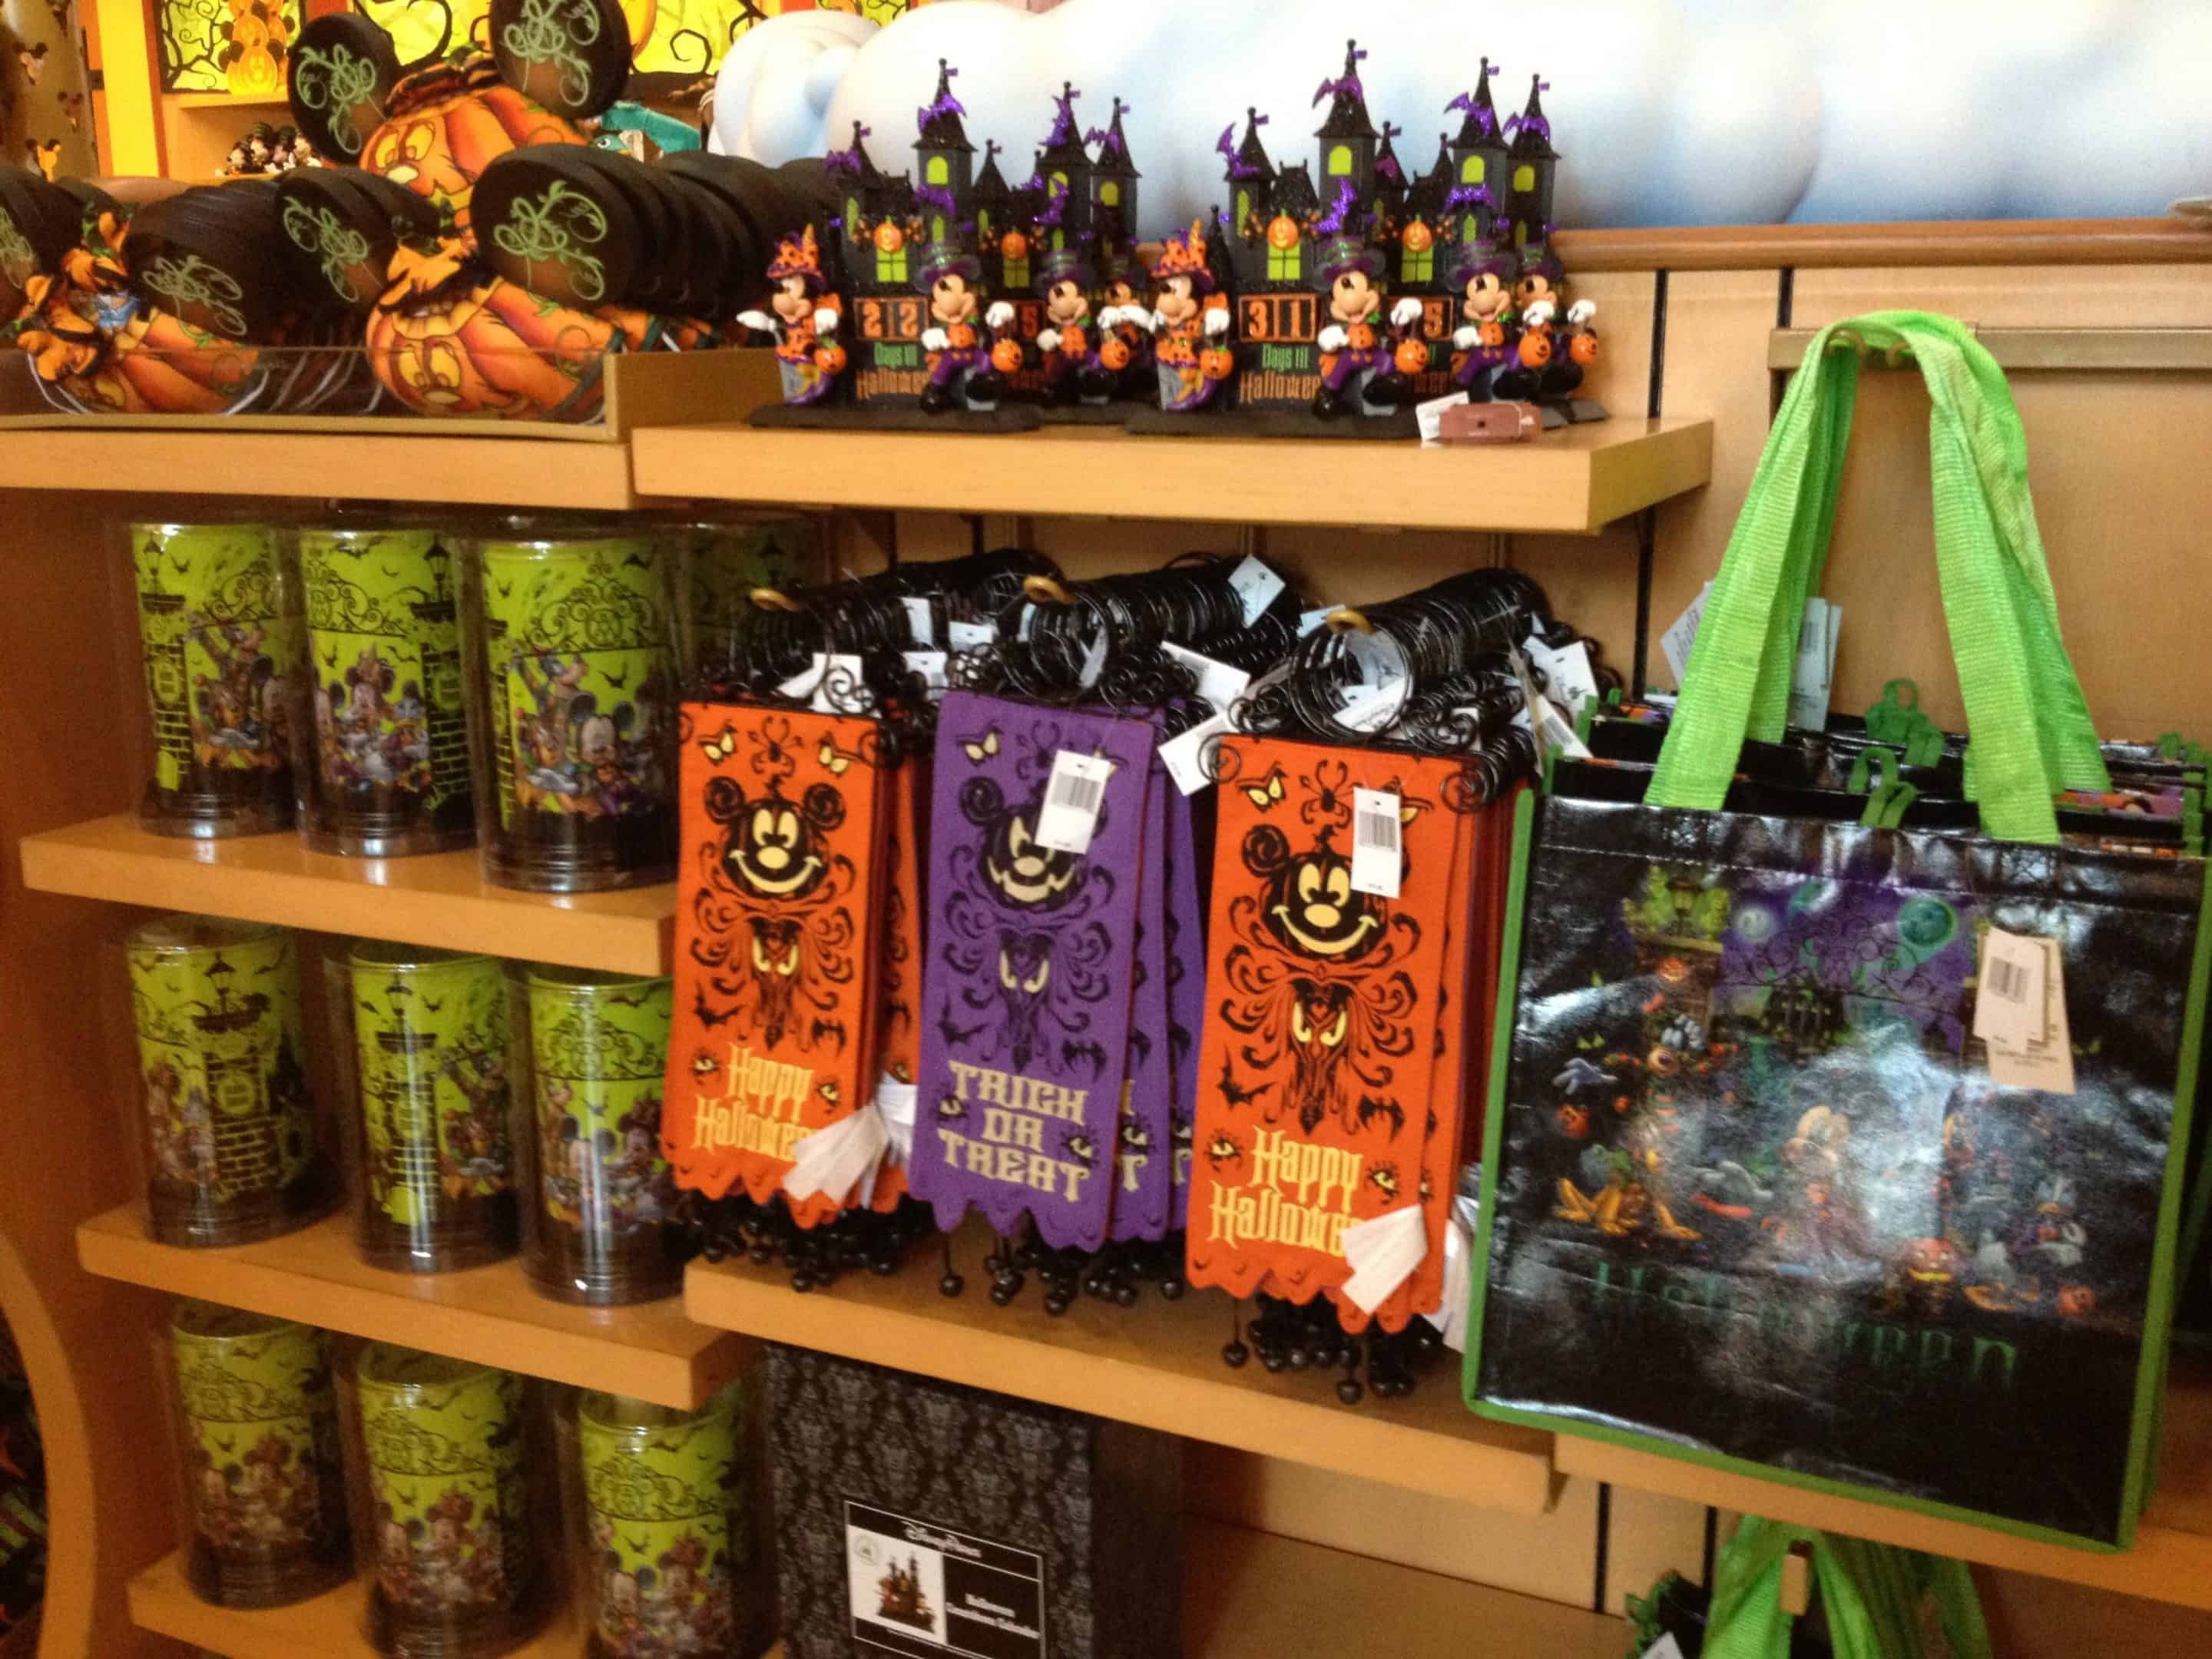 Disney Cruise Line Halloween Merchandise.Disney Parks Halloween Merchandise For 2012 Video Zannaland